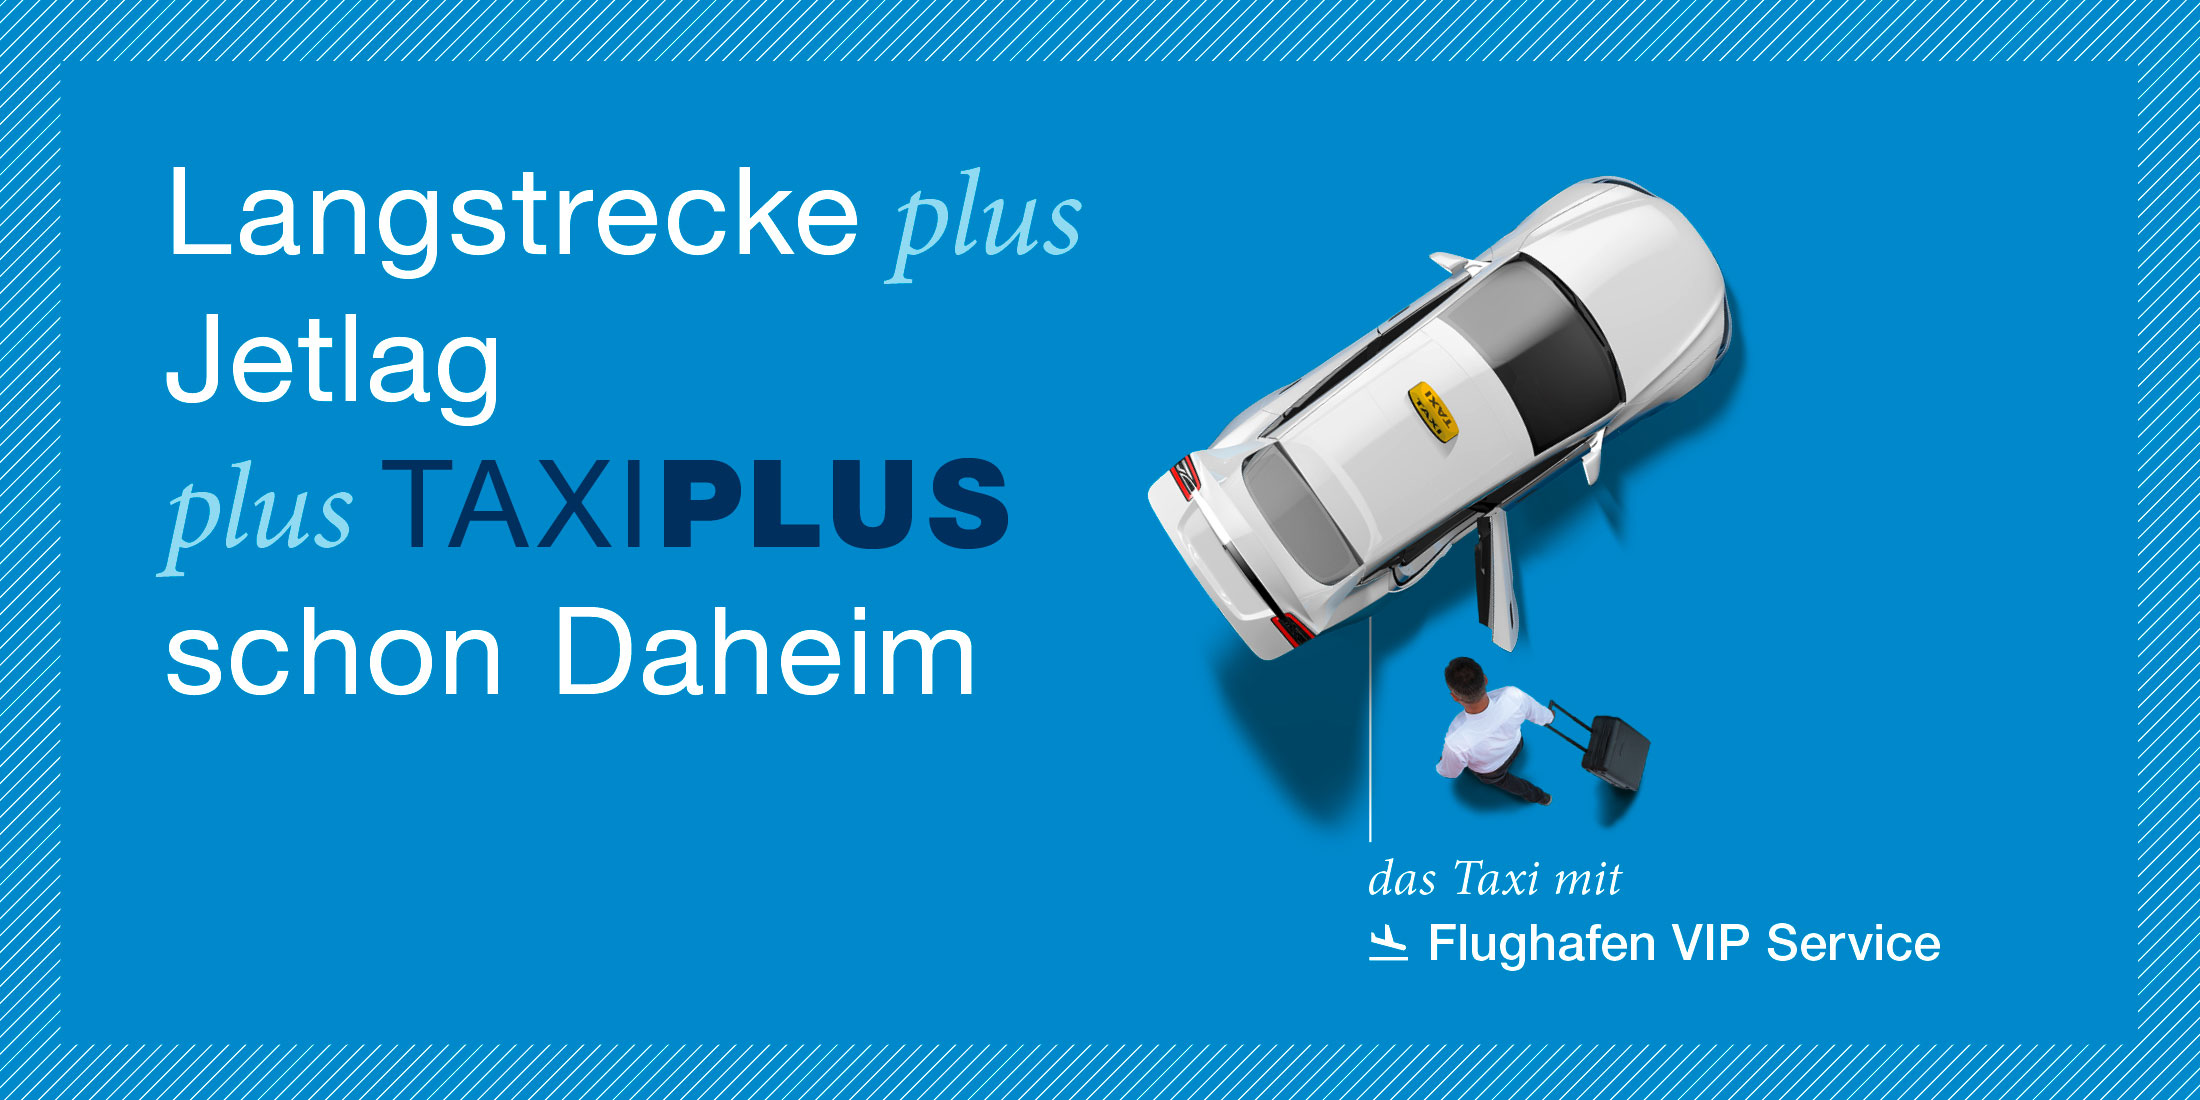 An add for TaxiPlus. A headline is shown. A TaxiPlus is shown from above, the driver is walking to the open trunk, pulling a suitcase. A line connects the cab to a special TaxiPlus feature.